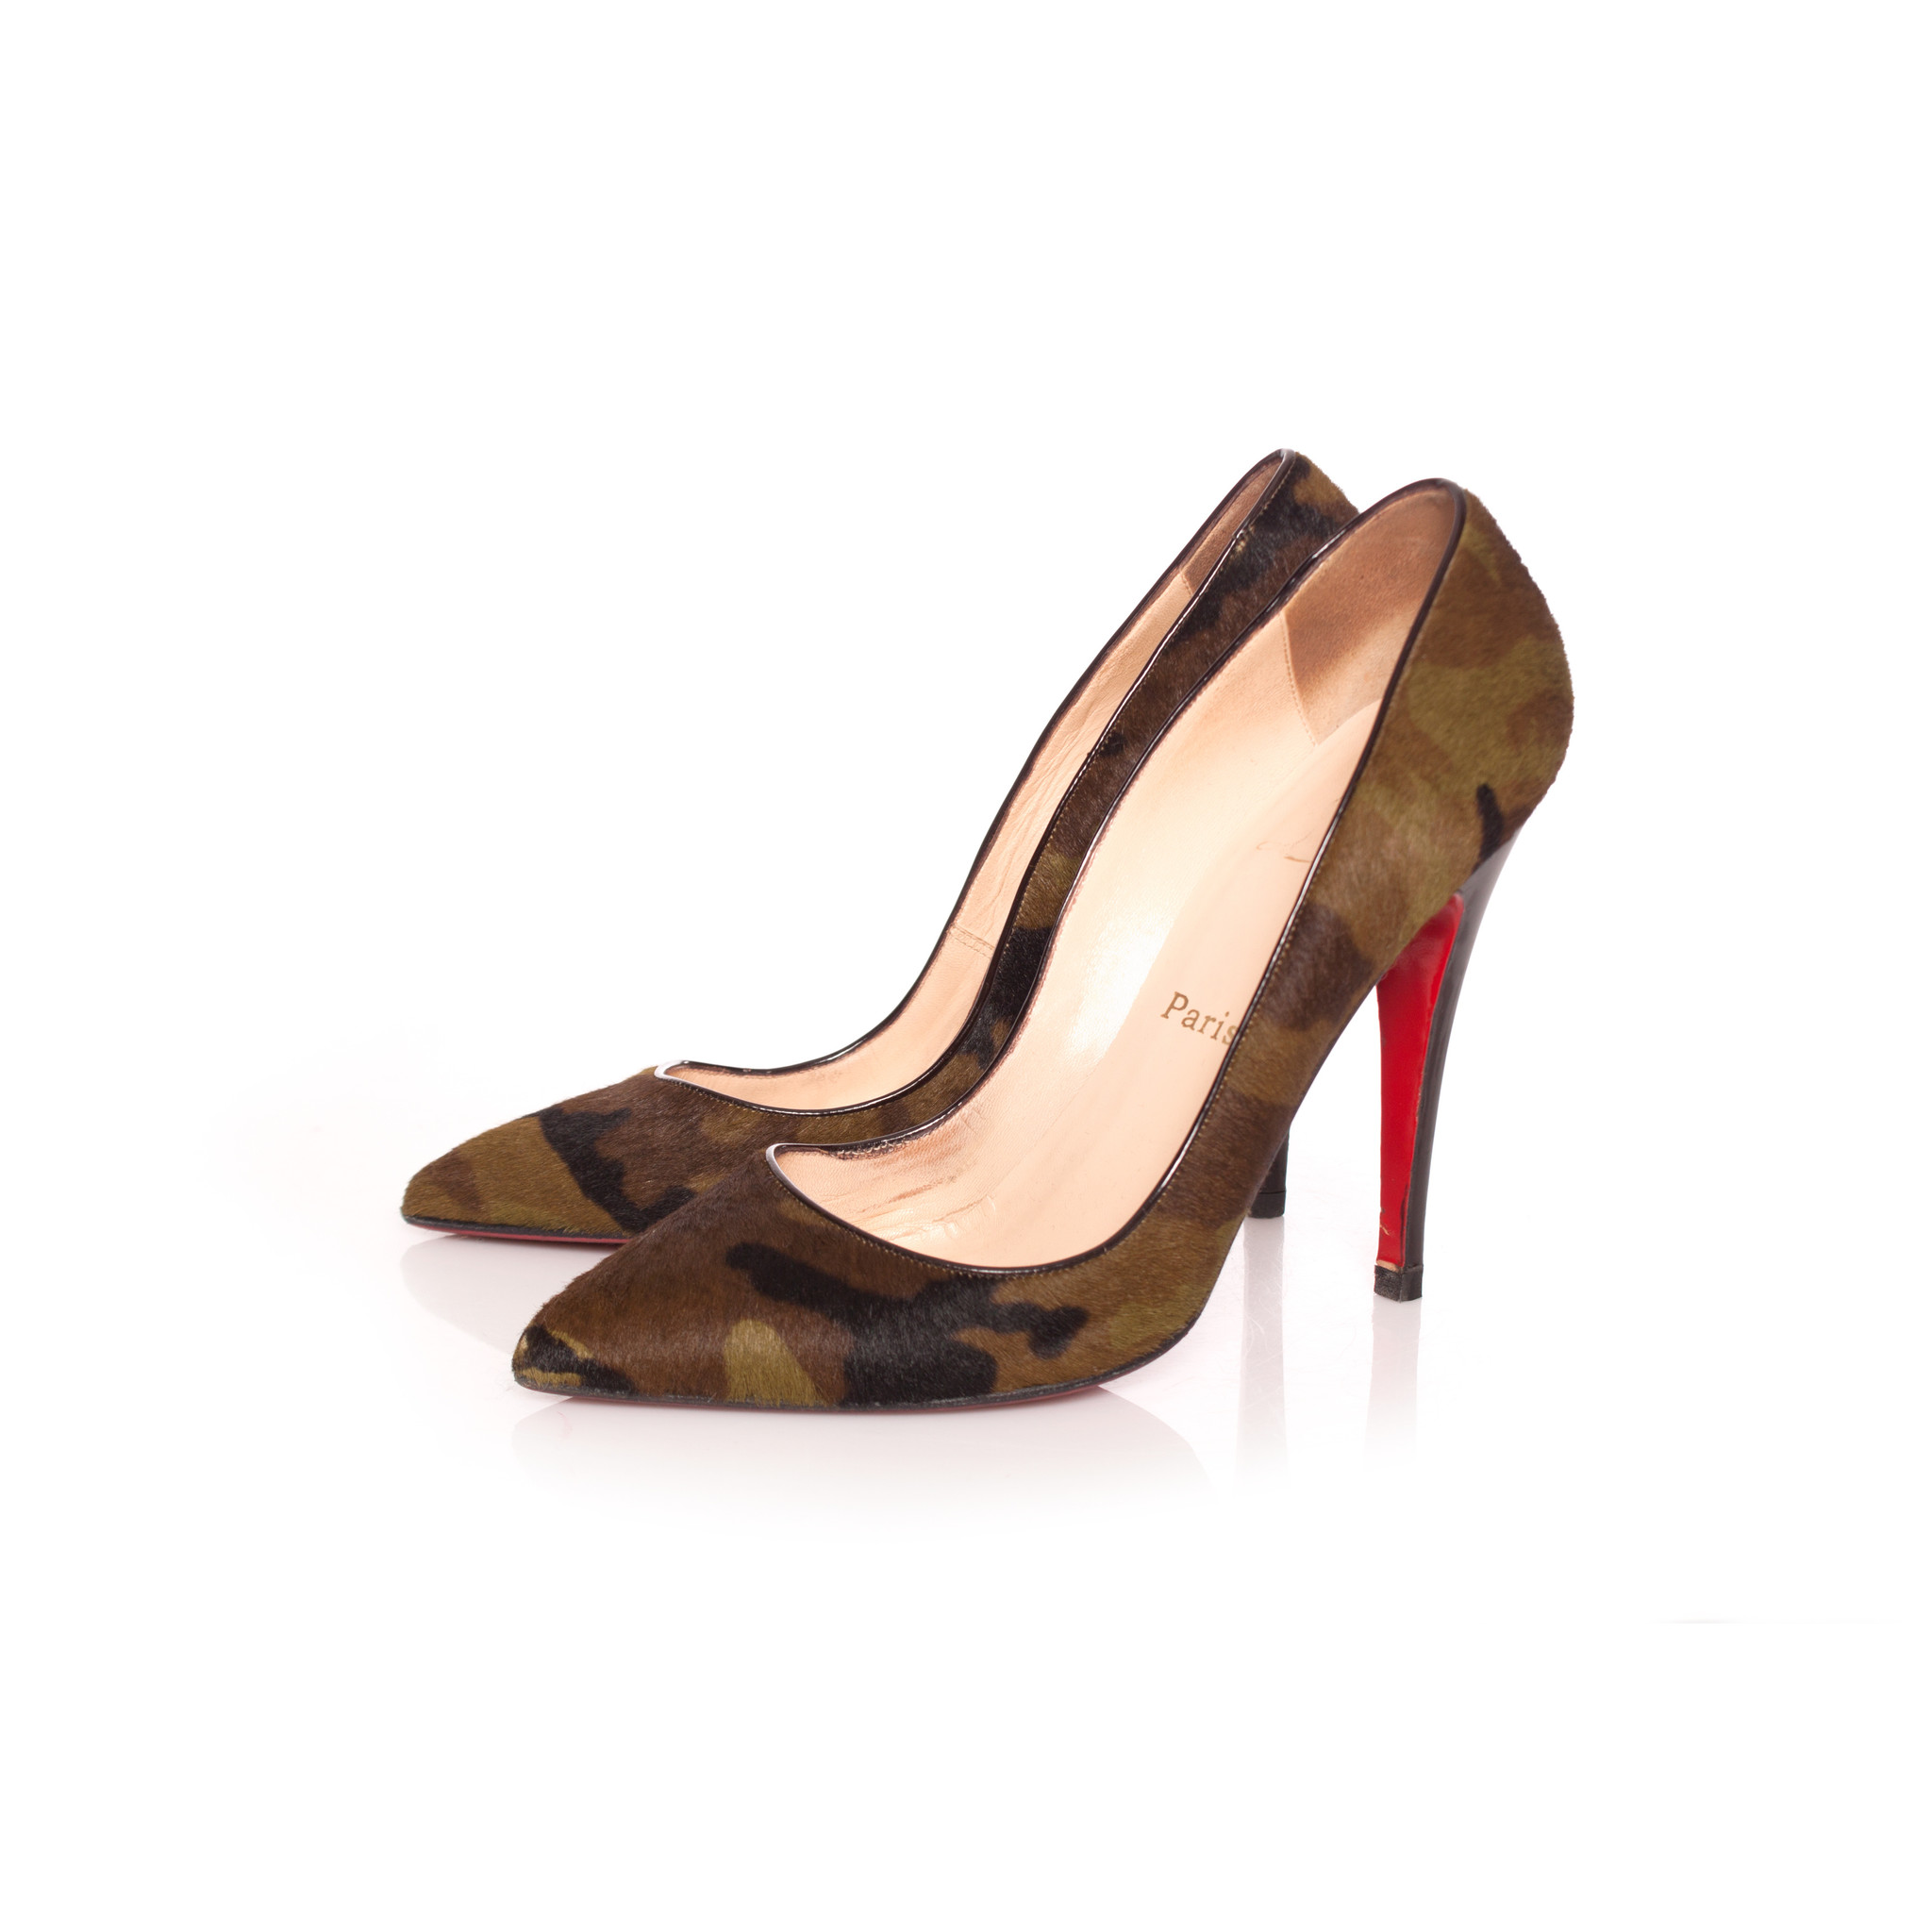 outlet store 9c2cf 5f6ae Christian Louboutin, Green army print pumps in calf hair with patent  leather heel in size 39.5.